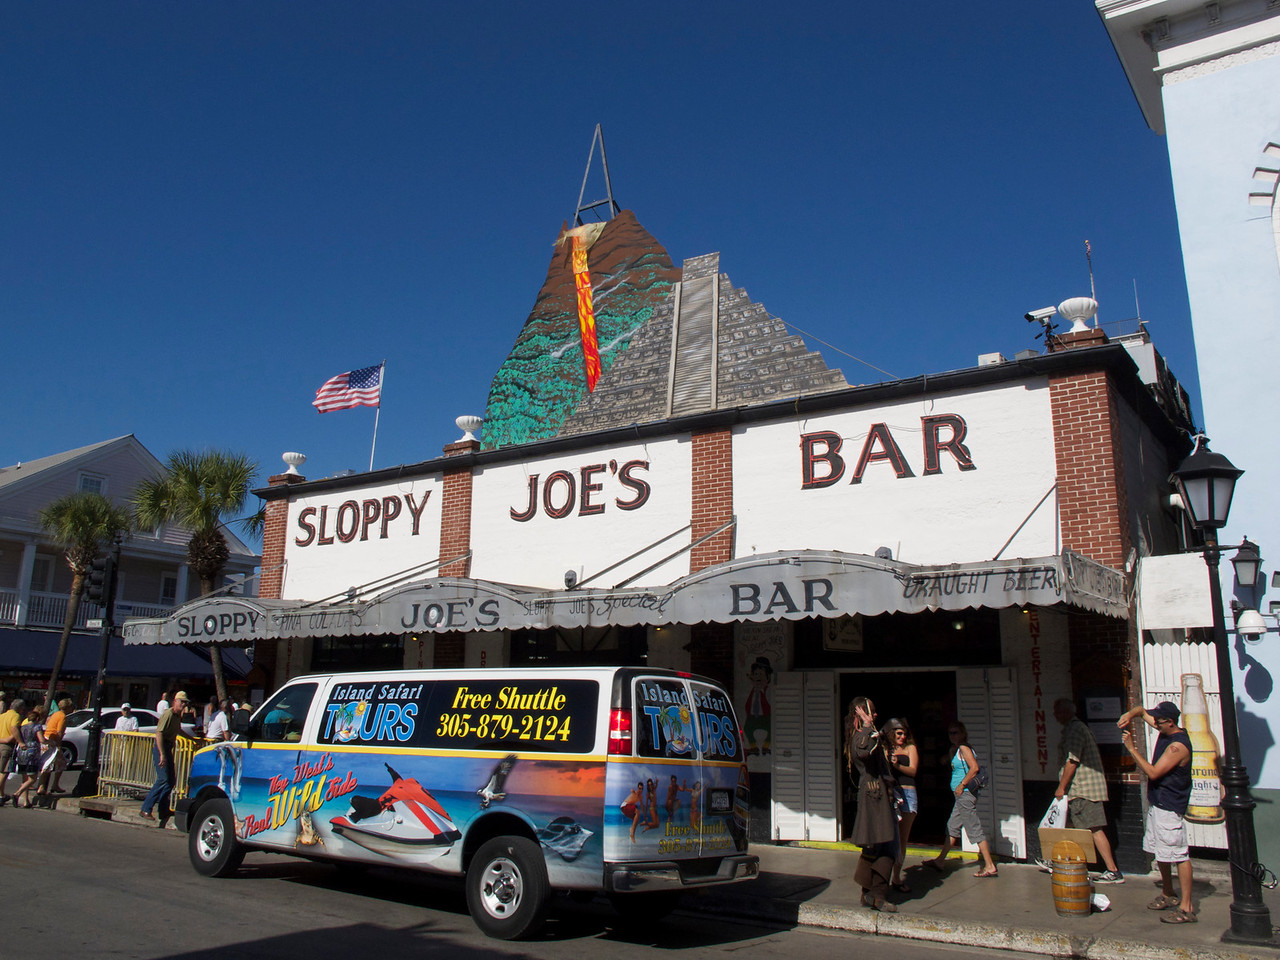 "The famous Sloppy Joe's Bar outgrew its original location and moved here, resulting in to bars known as Sloppy Joe's. It has various web cams here: <a href=""http://sloppyjoes.com/index.php/cam_lp/"">http://sloppyjoes.com/index.php/cam_lp/</a><br /> and if you have a cell phone, you can have your friends alert you to when you're on view on the street cam.<br /> <br /> In the original location, the late Capt. Tony has a bar where Ernest Hemingway actually drank. Sloppy Joe moved the bar in 1937. Capt. Tony's has a website here: <a href=""http://www.capttonyssaloon.com"">http://www.capttonyssaloon.com</a><br /> <br /> There are lots of stories about the original location: it was a morgue, and the coroner buried his daughter there, where she remains to this day, ghosts, and naked people."